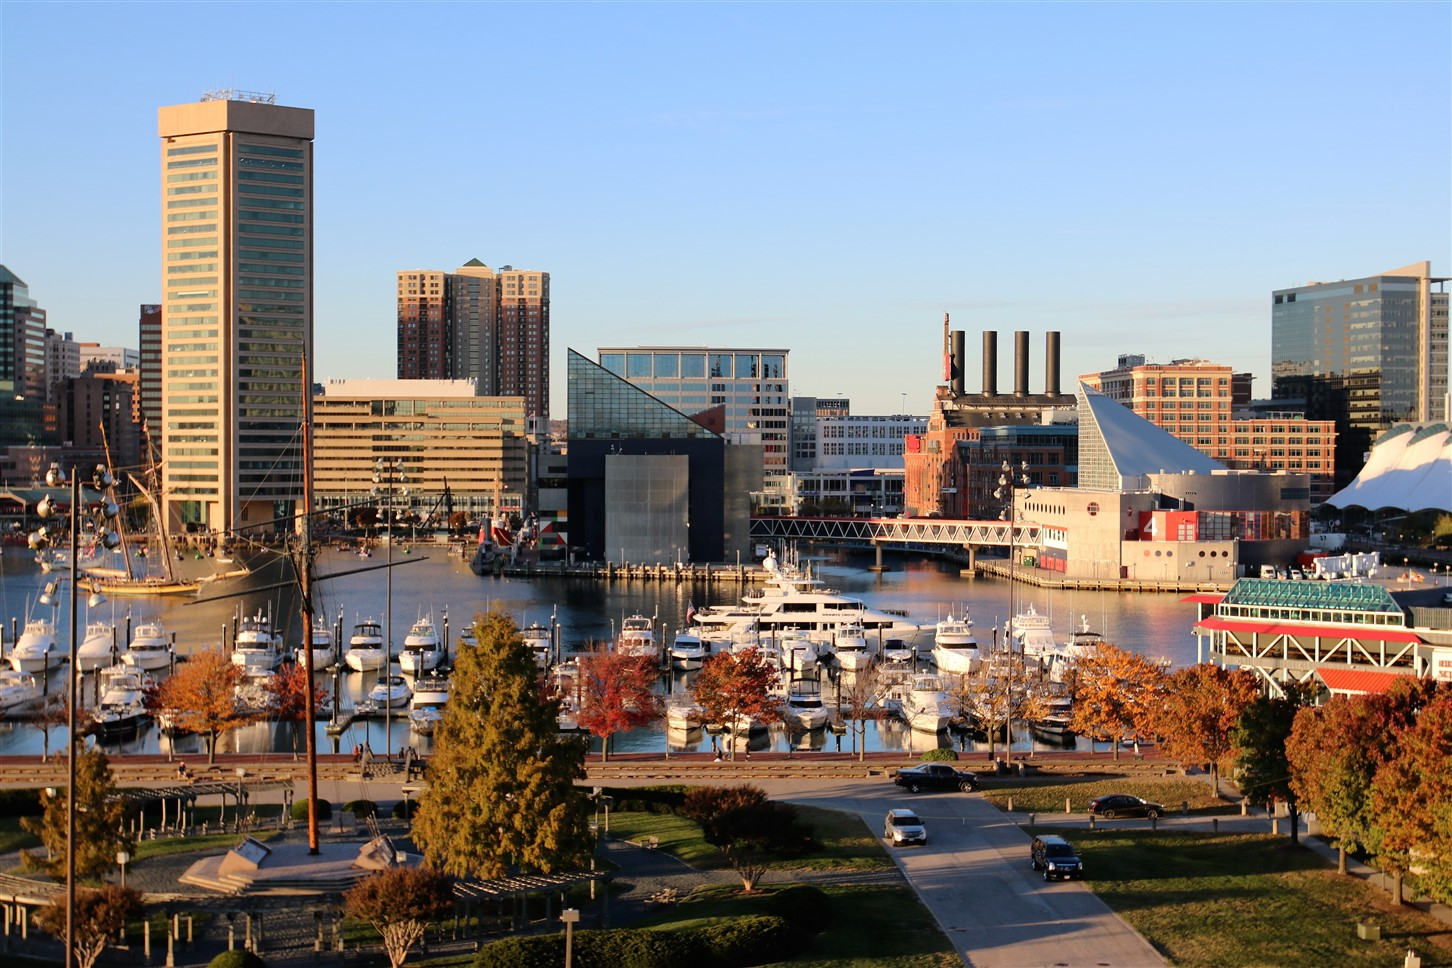 2016 11 06 202 Baltimore MD.jpg